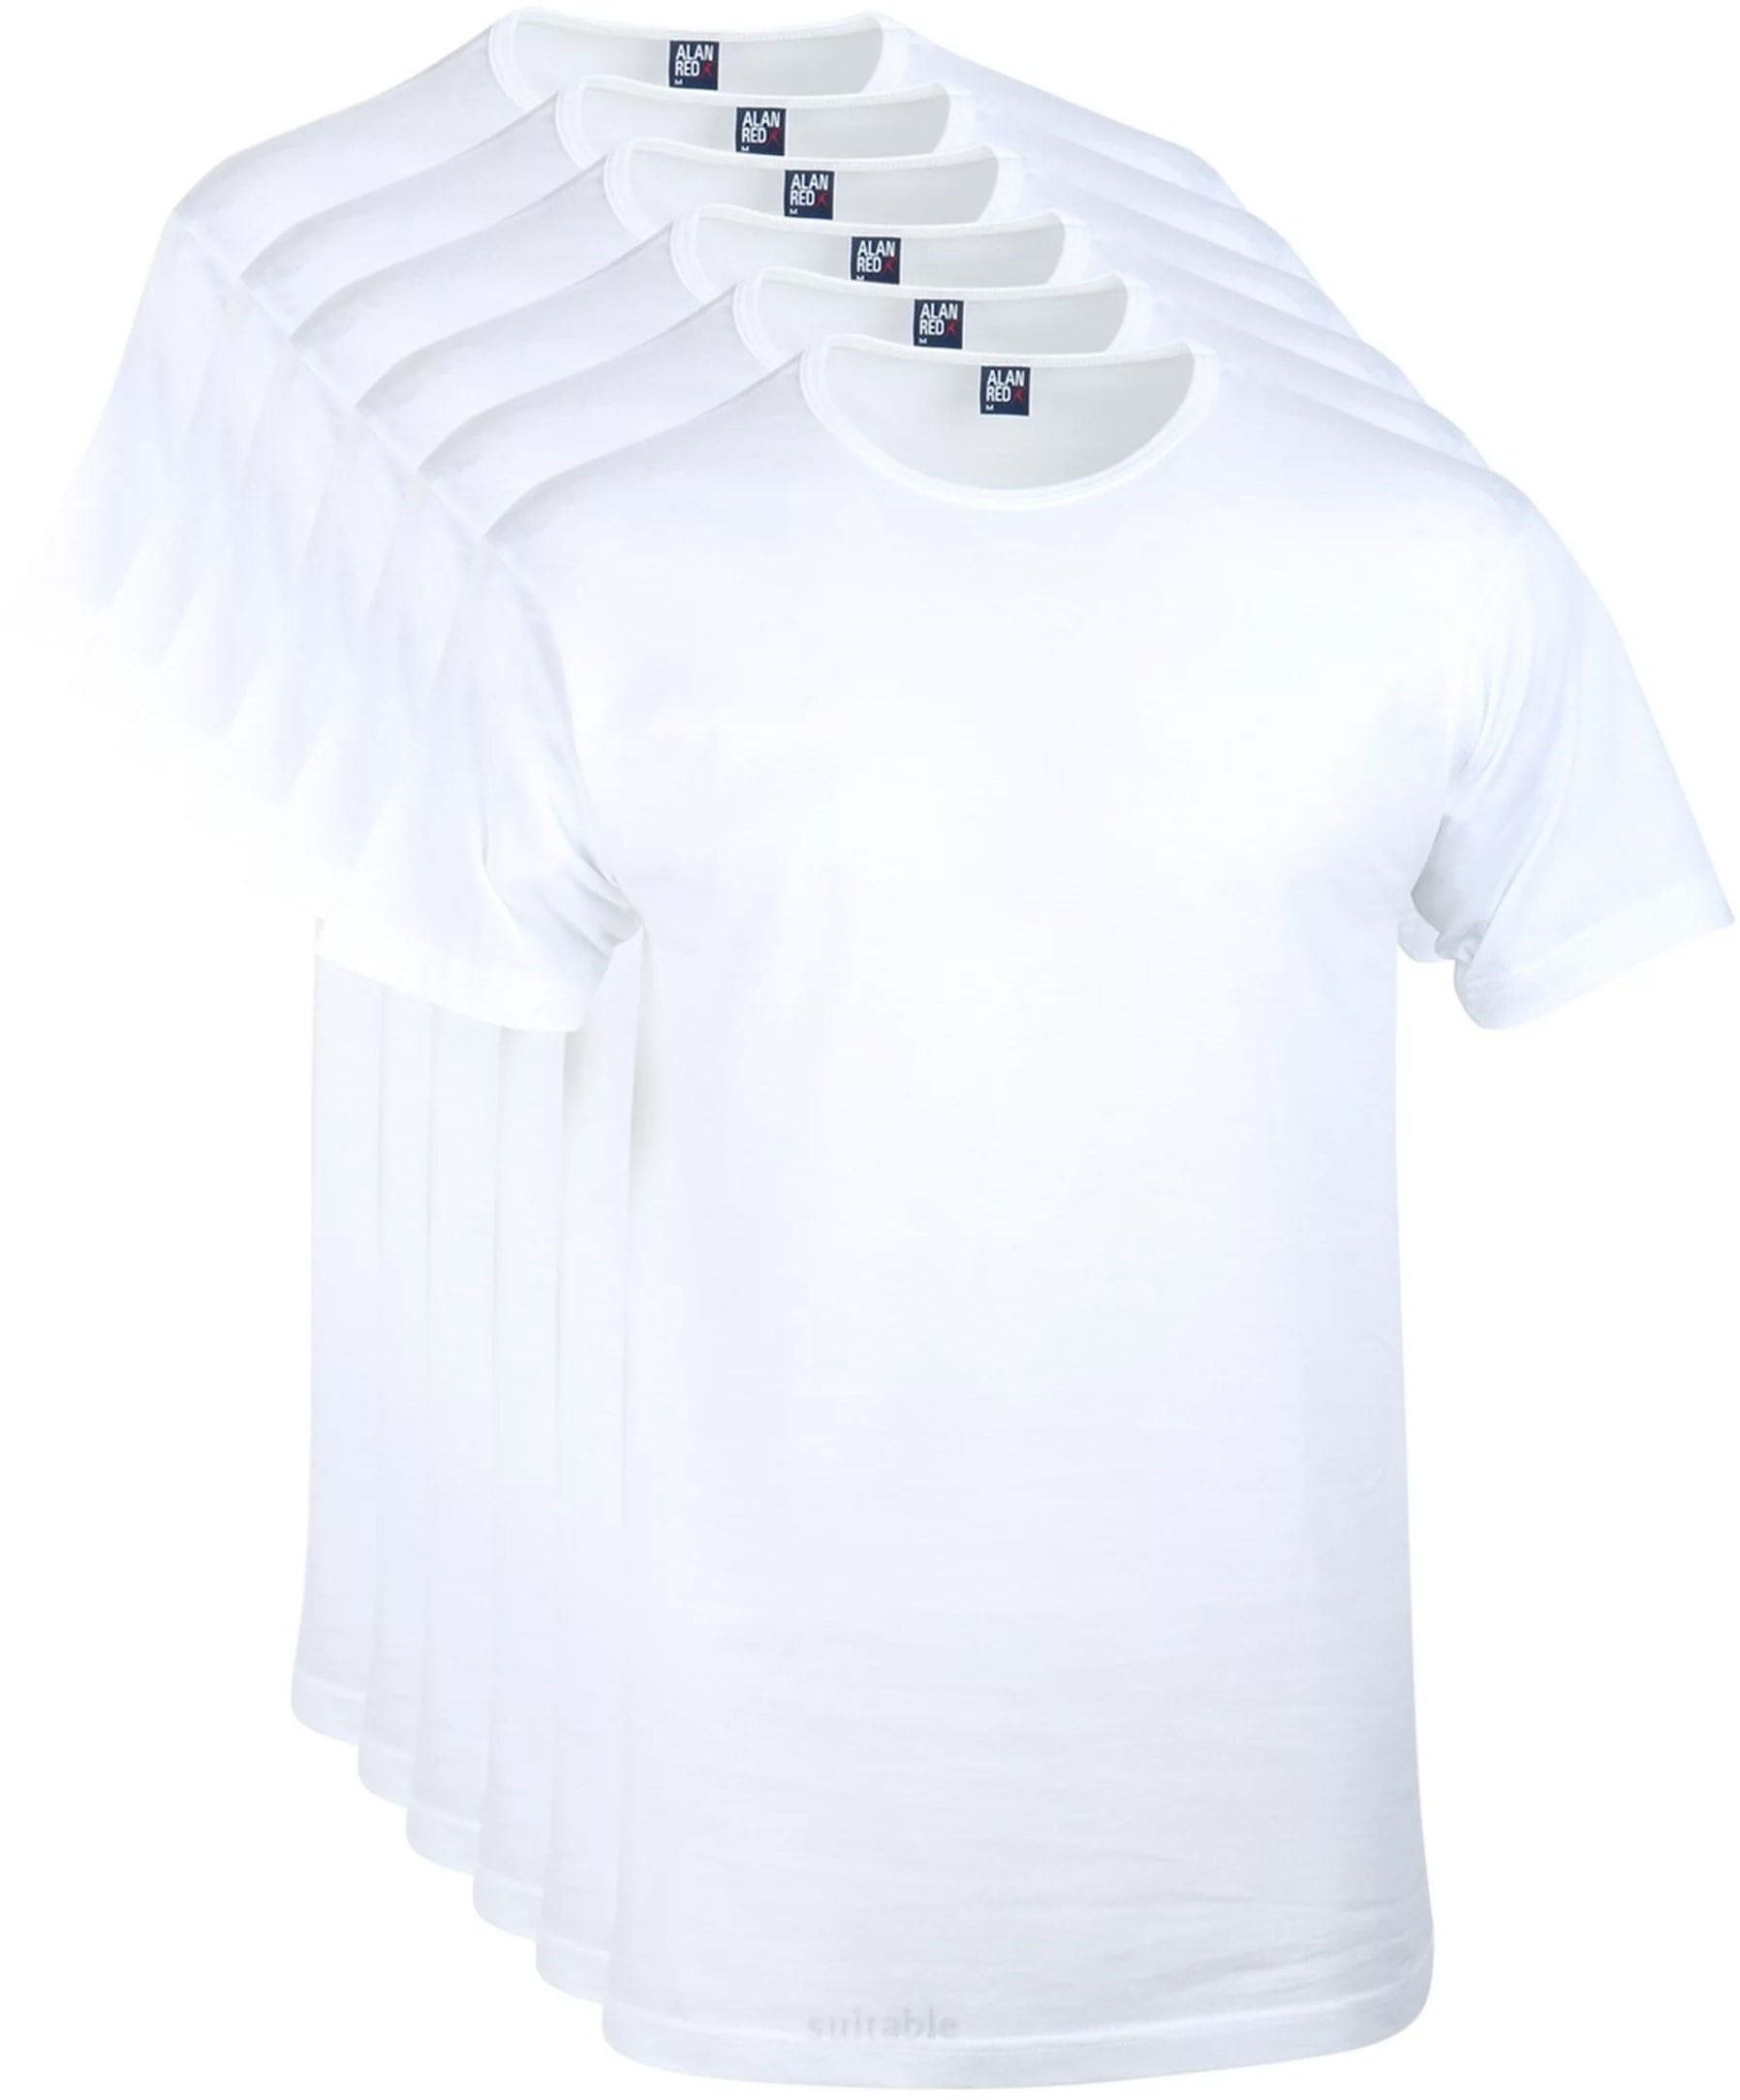 Alan Red Aanbieding Derby O-Hals T-shirts Wit (6Pack) foto 0